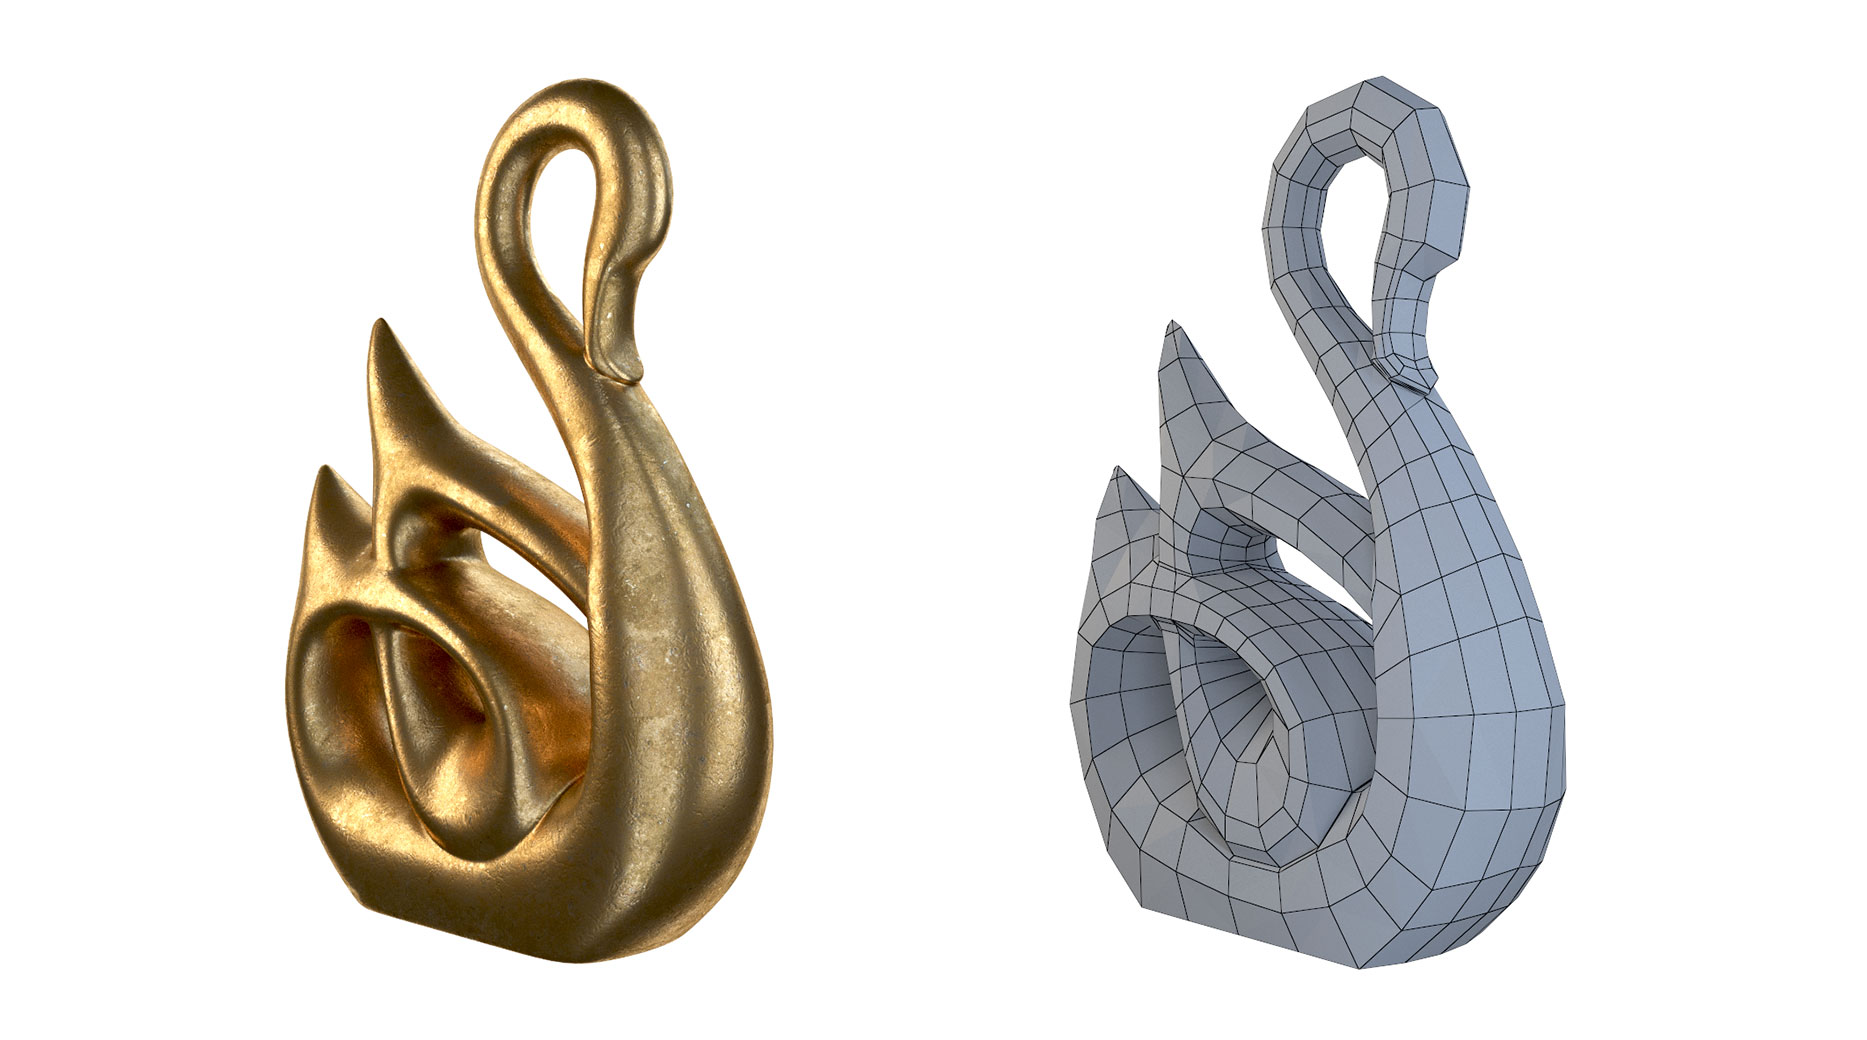 gallery-Home-Decor-Swan-Sculpture